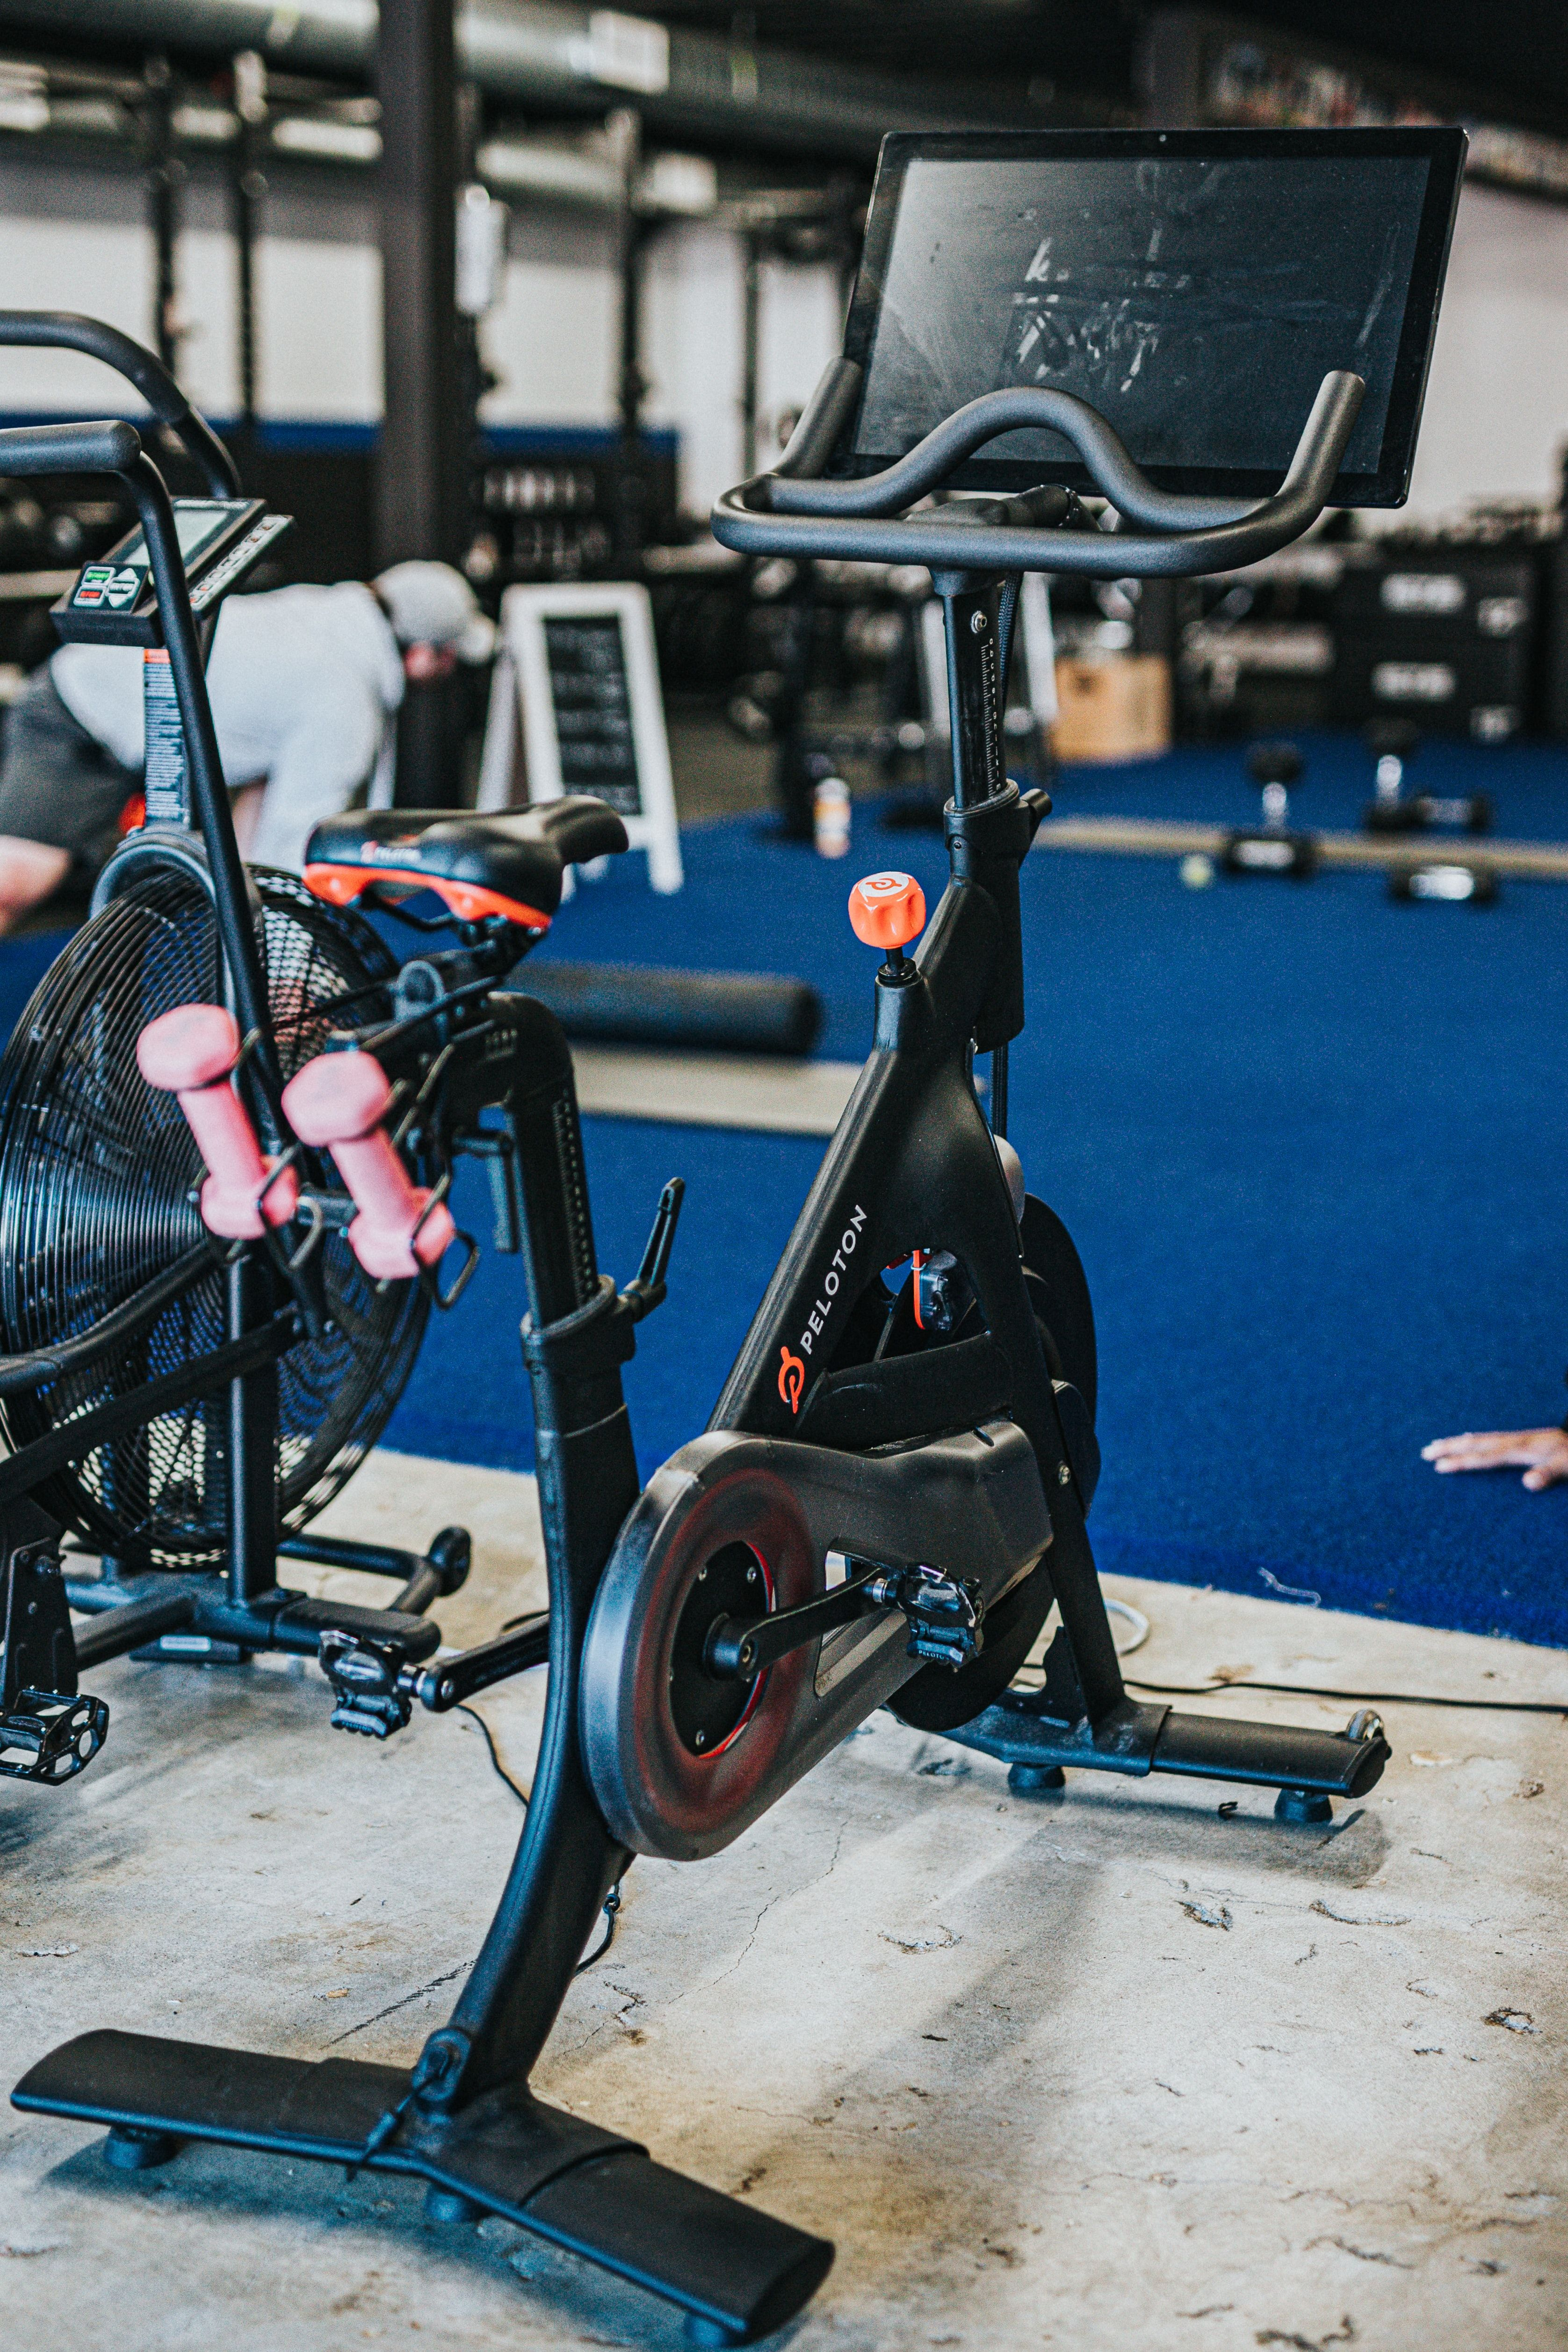 Peloton What My Thighs Say In 2020 Biking Workout Peloton Personal Training